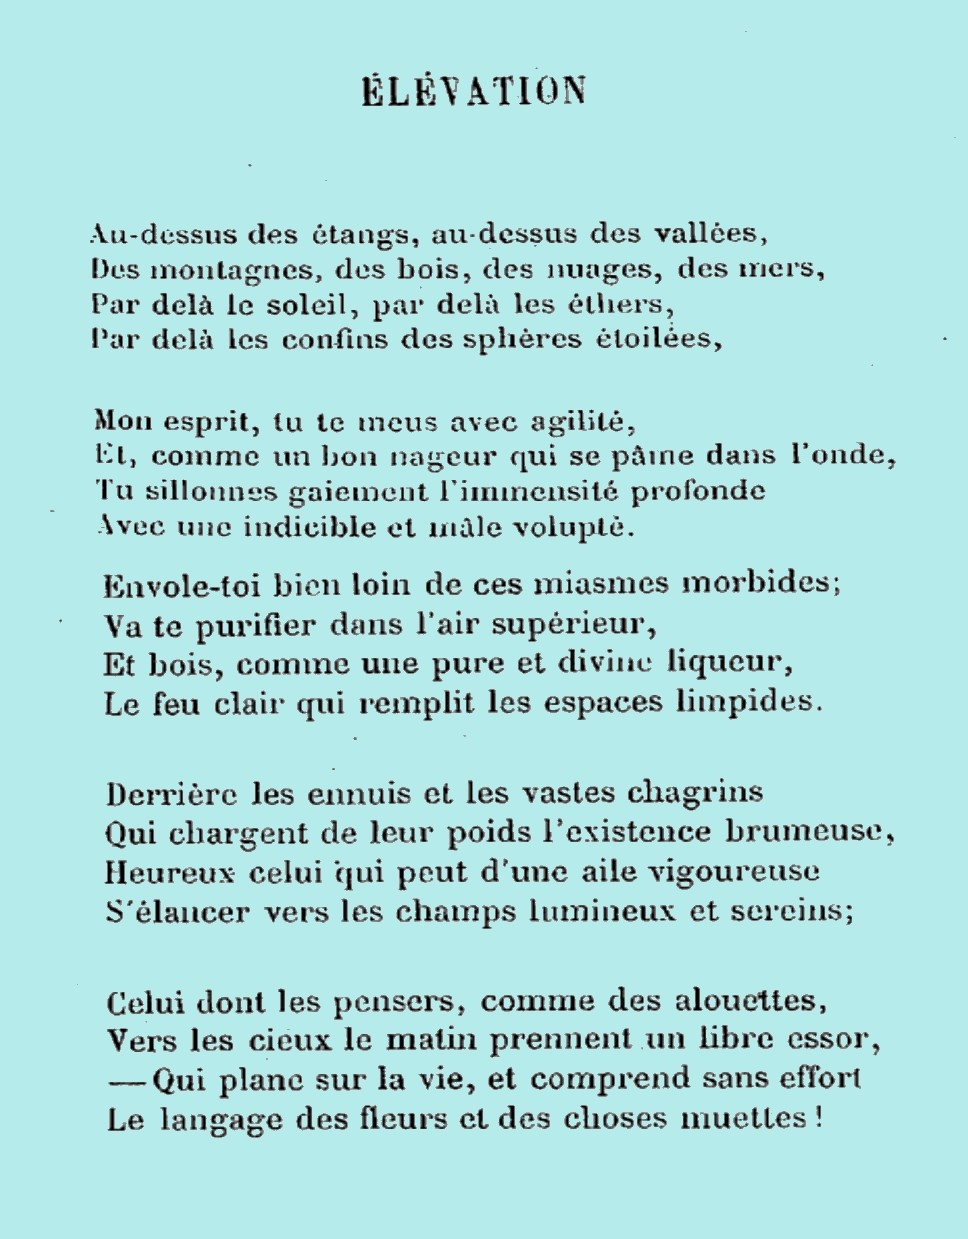 poeme elevation